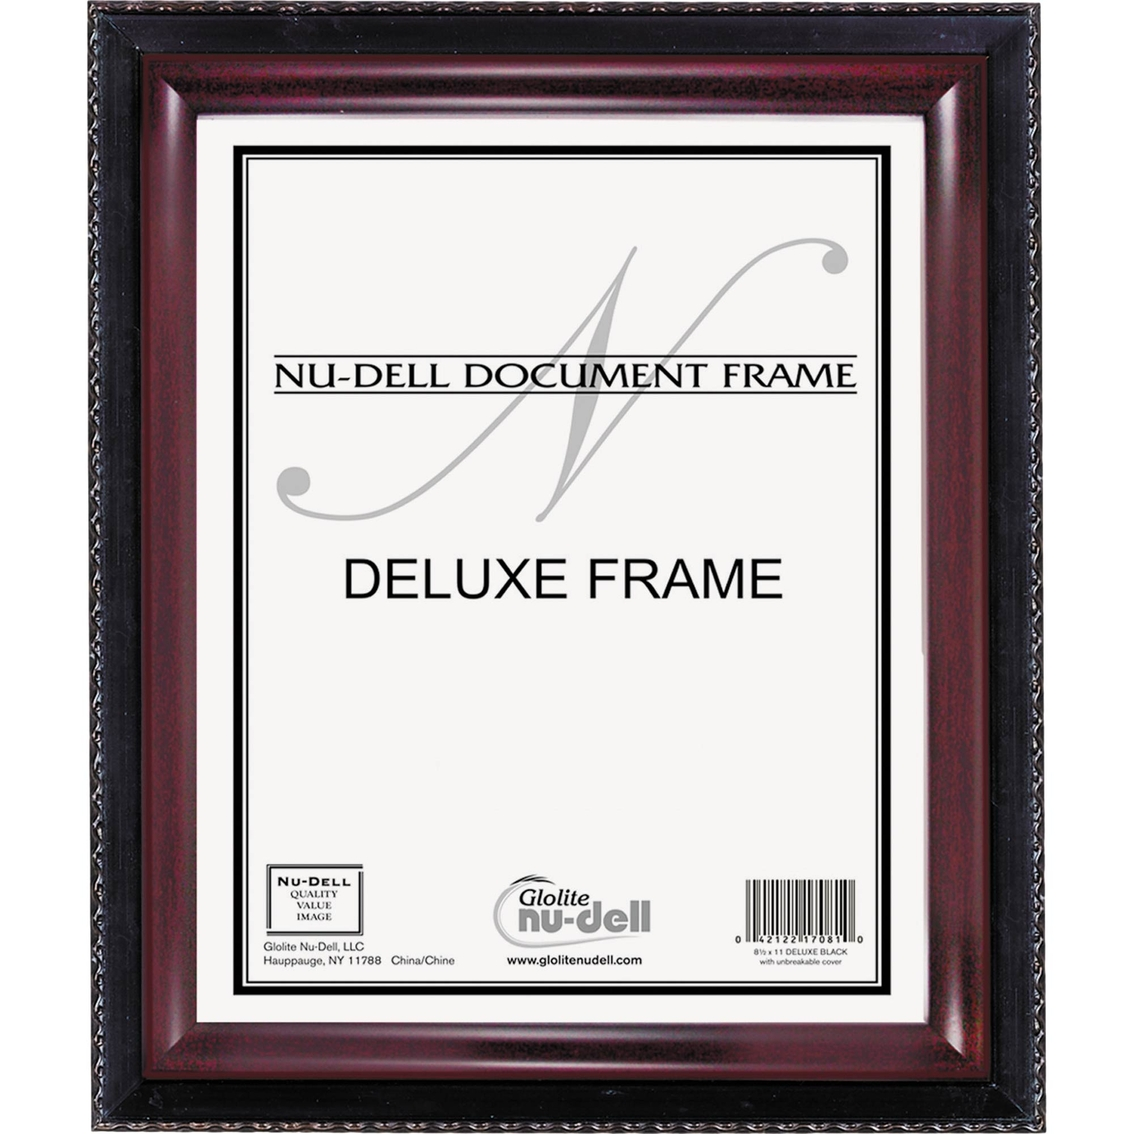 Nudell executive document frame plastic blackmahogany frames nudell executive document frame plastic blackmahogany jeuxipadfo Gallery